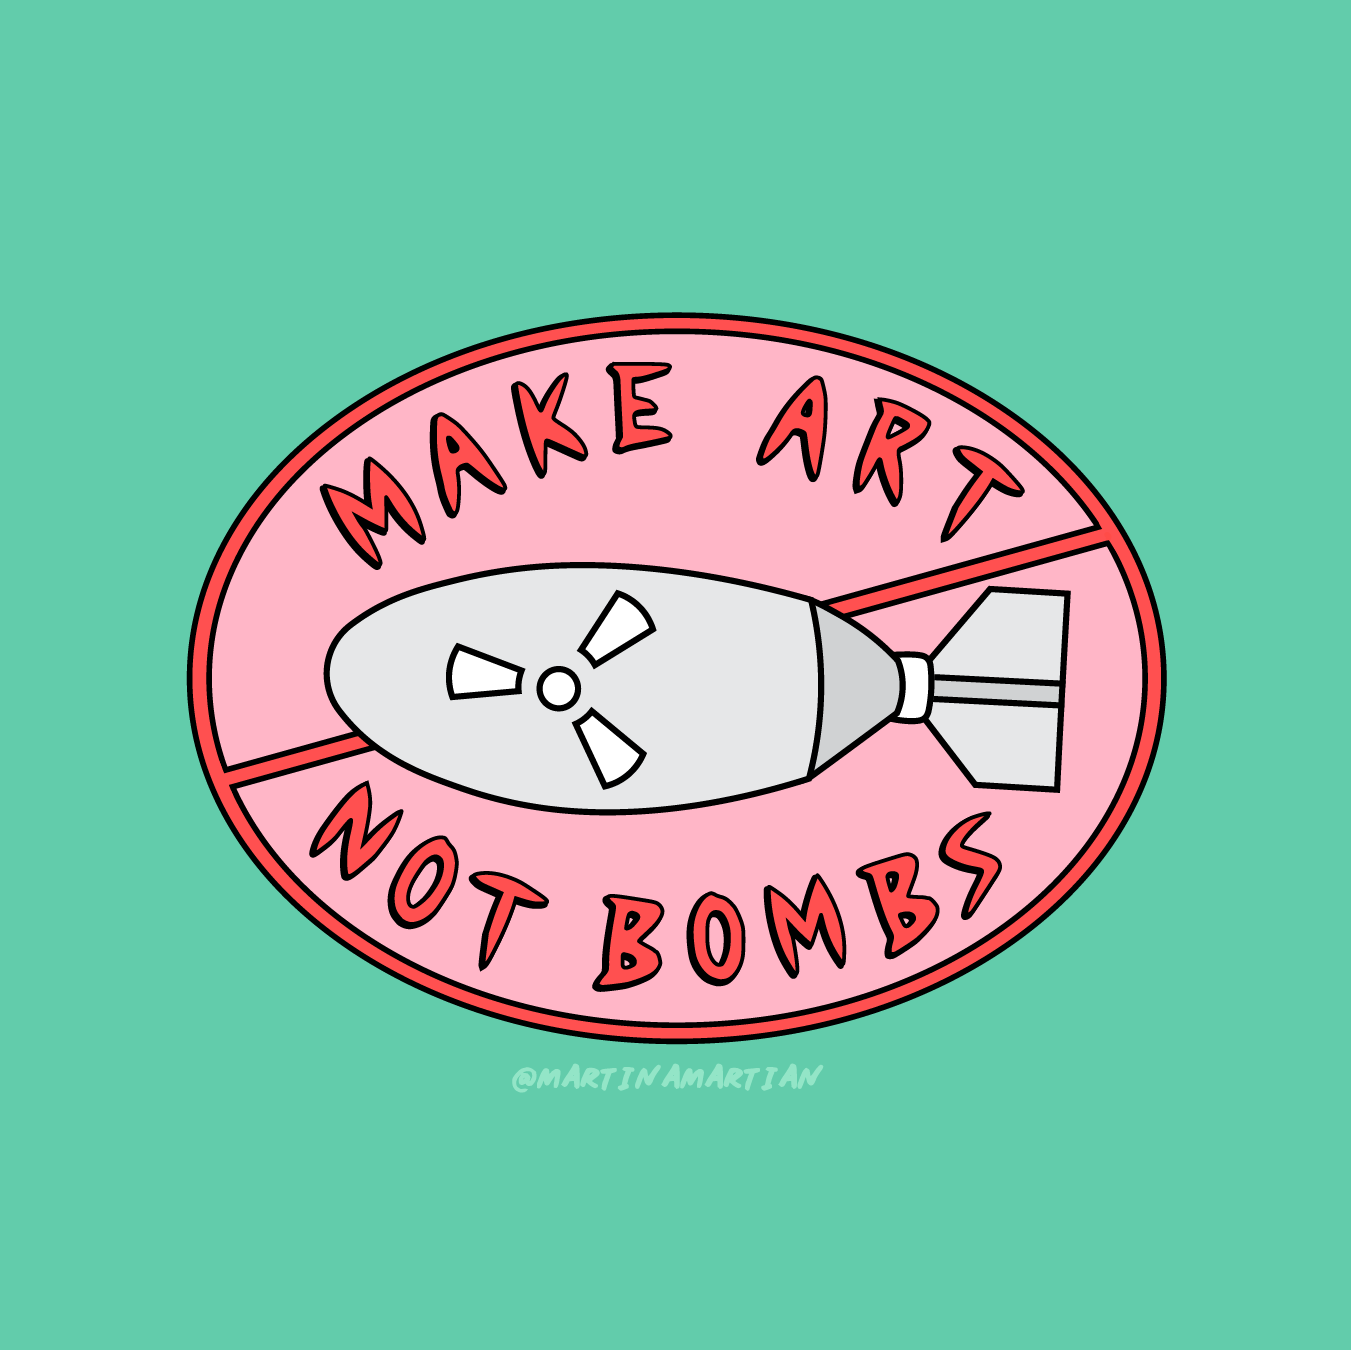 "Martina Martian   @martinamartian   Make Art Not Bombs,  2018 Illustration  It wasn't so long ago that Martina Martian visited Hiroshima and finally understood the reality of how devastating nuclear weapons are.   Martian joined thousands of others in signing a pledge against nuclear warfare but says that their voices have not been heard. ""Weapons 20 times more powerful than that which devastated Hiroshima and Nagasaki already exist.""  In a series of images, which appear fun and bold, Martian speaks to a dark underlying reality, ""that the threat of nuclear warfare is alive and real."""